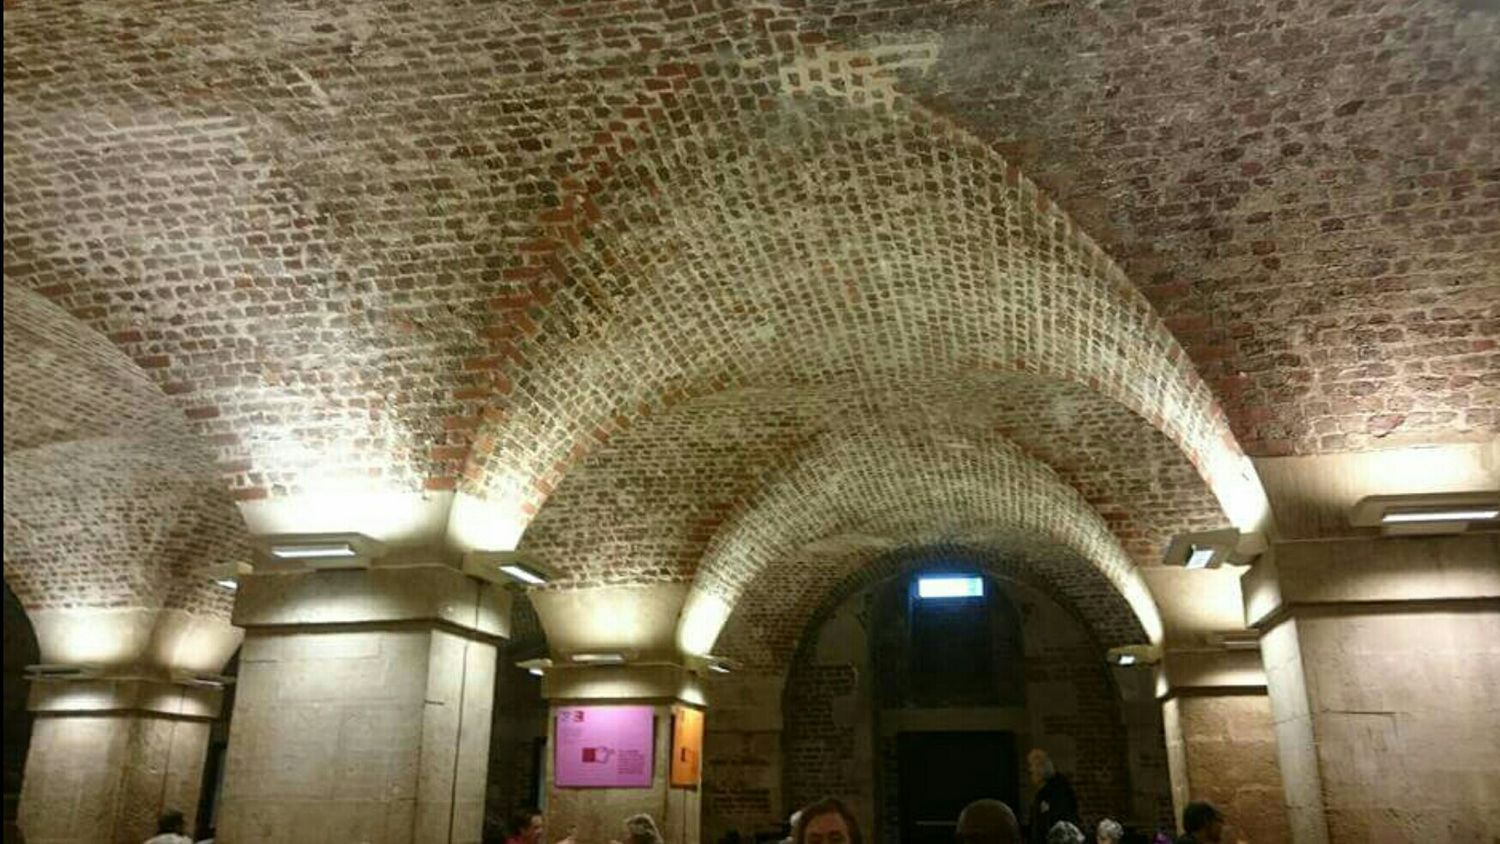 Crypt Cafe Architecture Bricks Ceiling Vaulted Ceilings Arches Heritage Building Atmospheric Mood